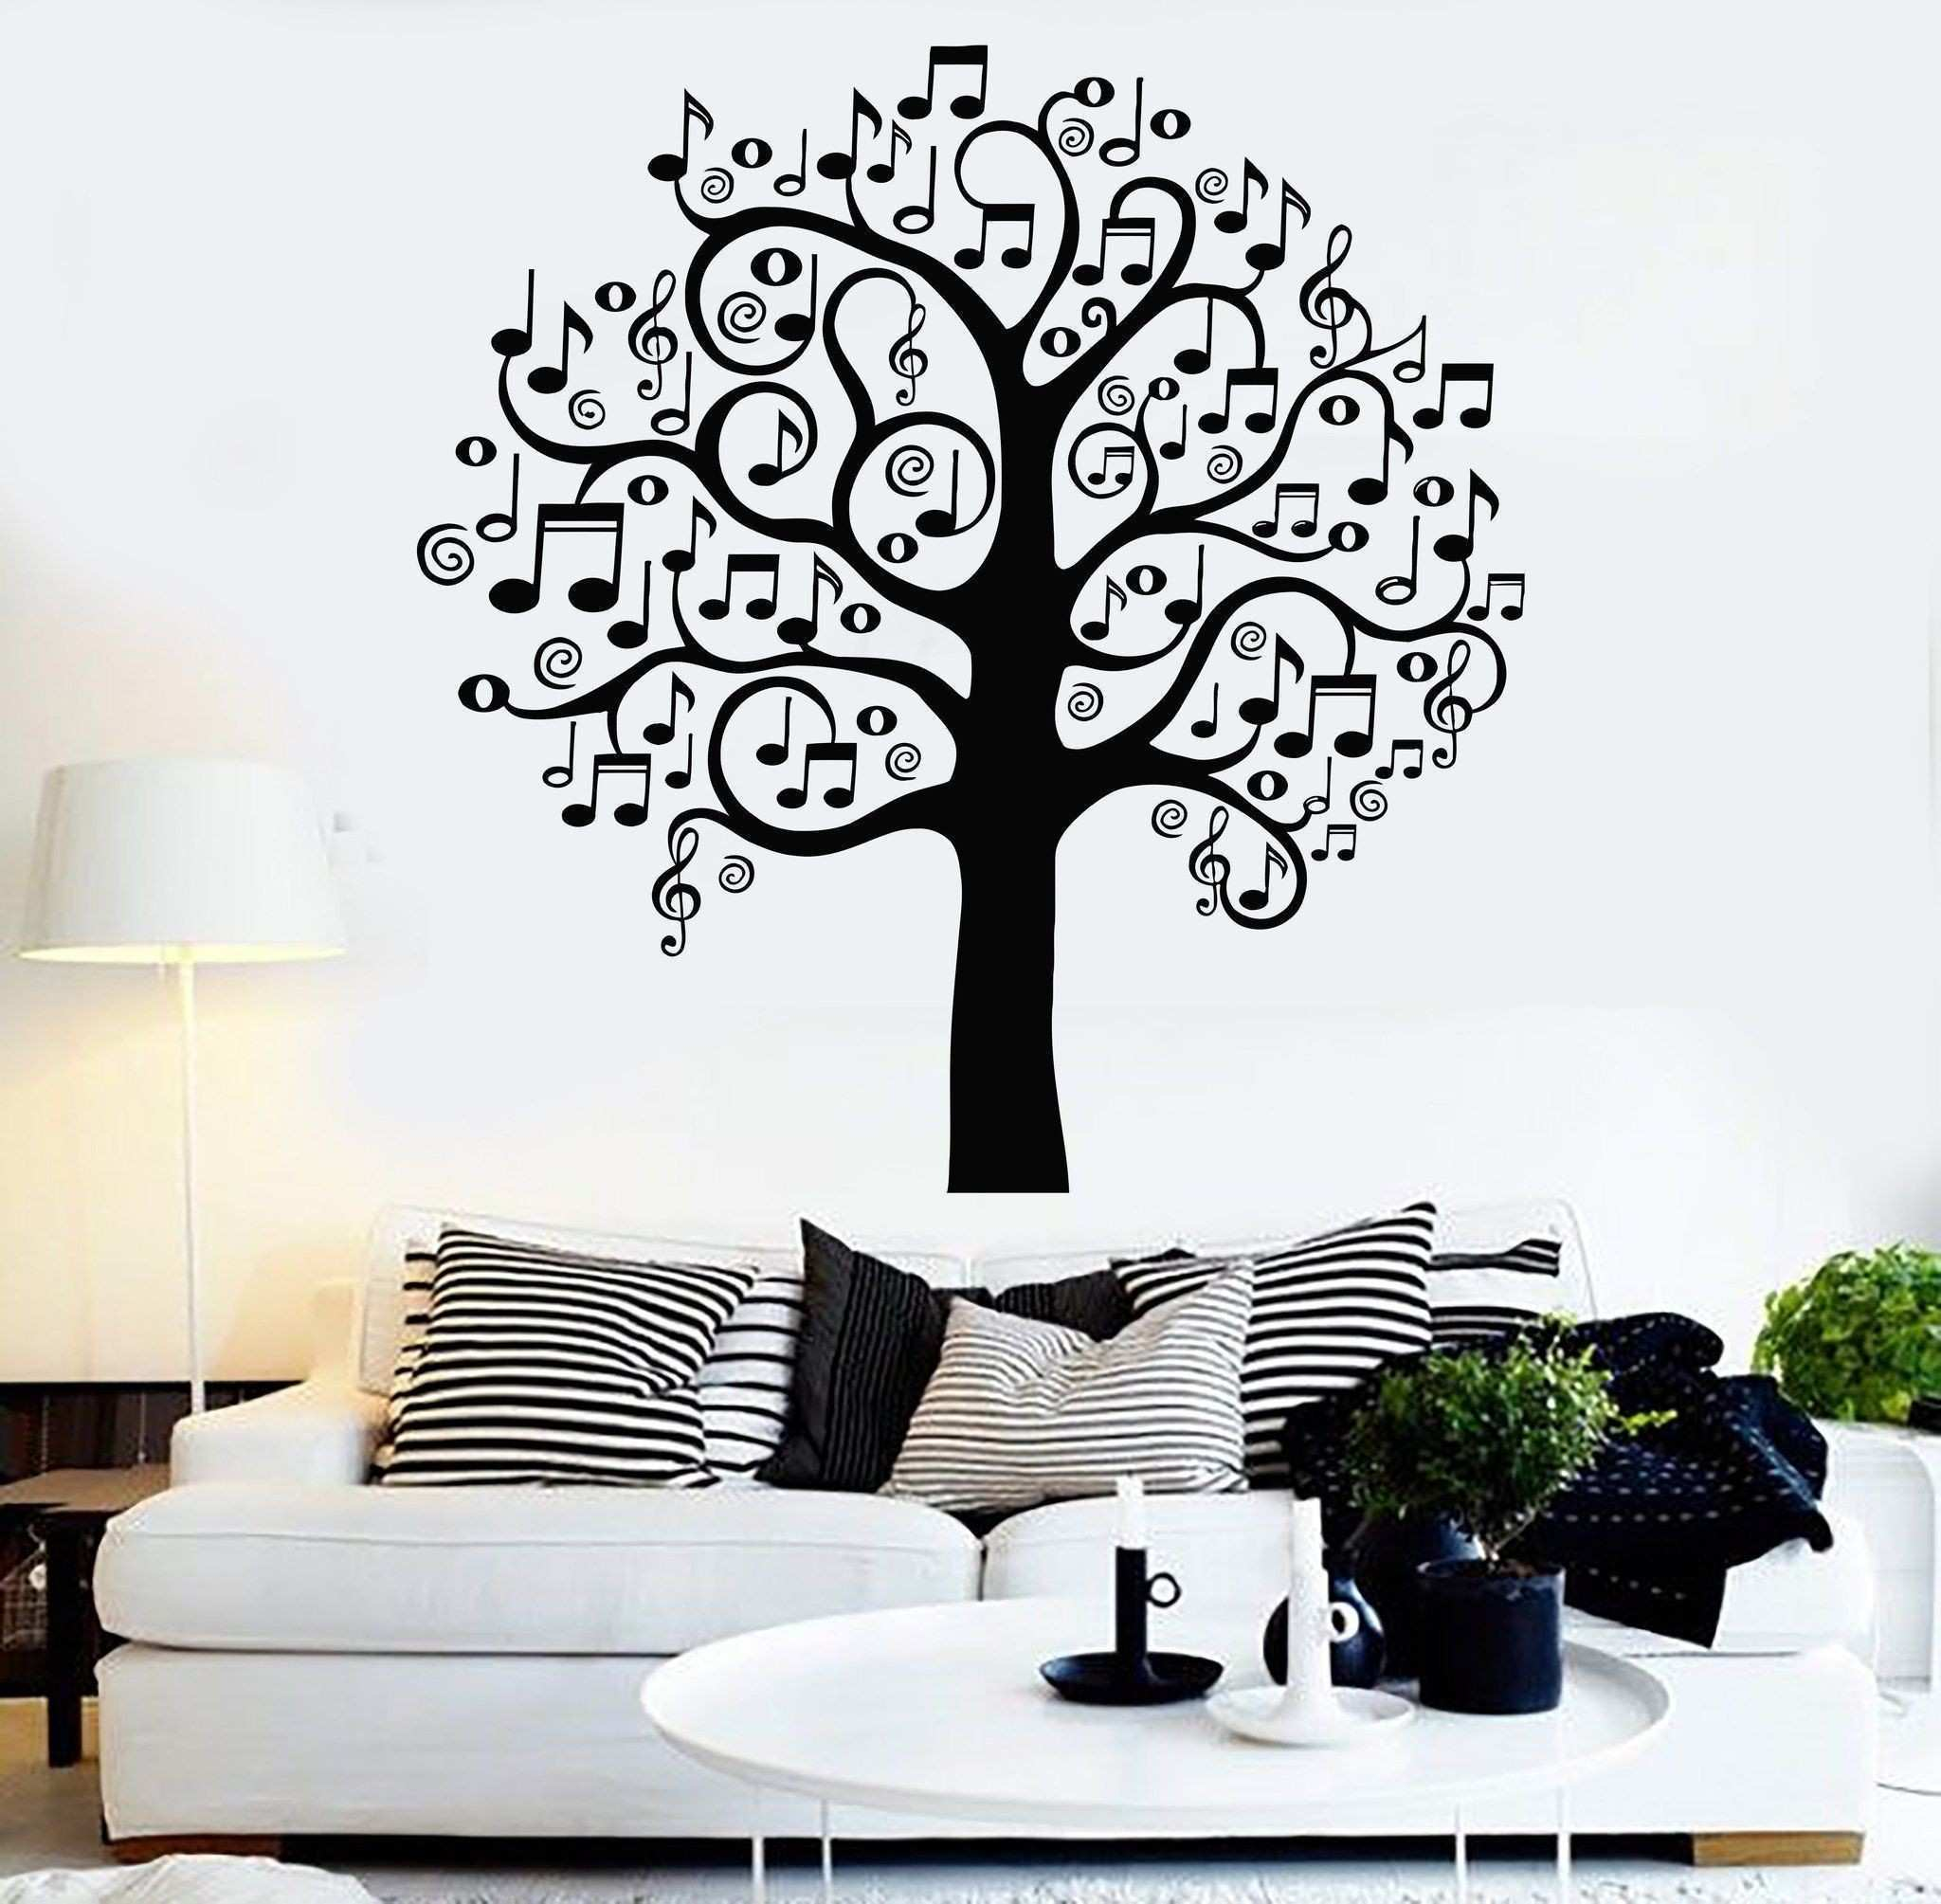 Awesome Vinyl Wall Decals Tree with Birds